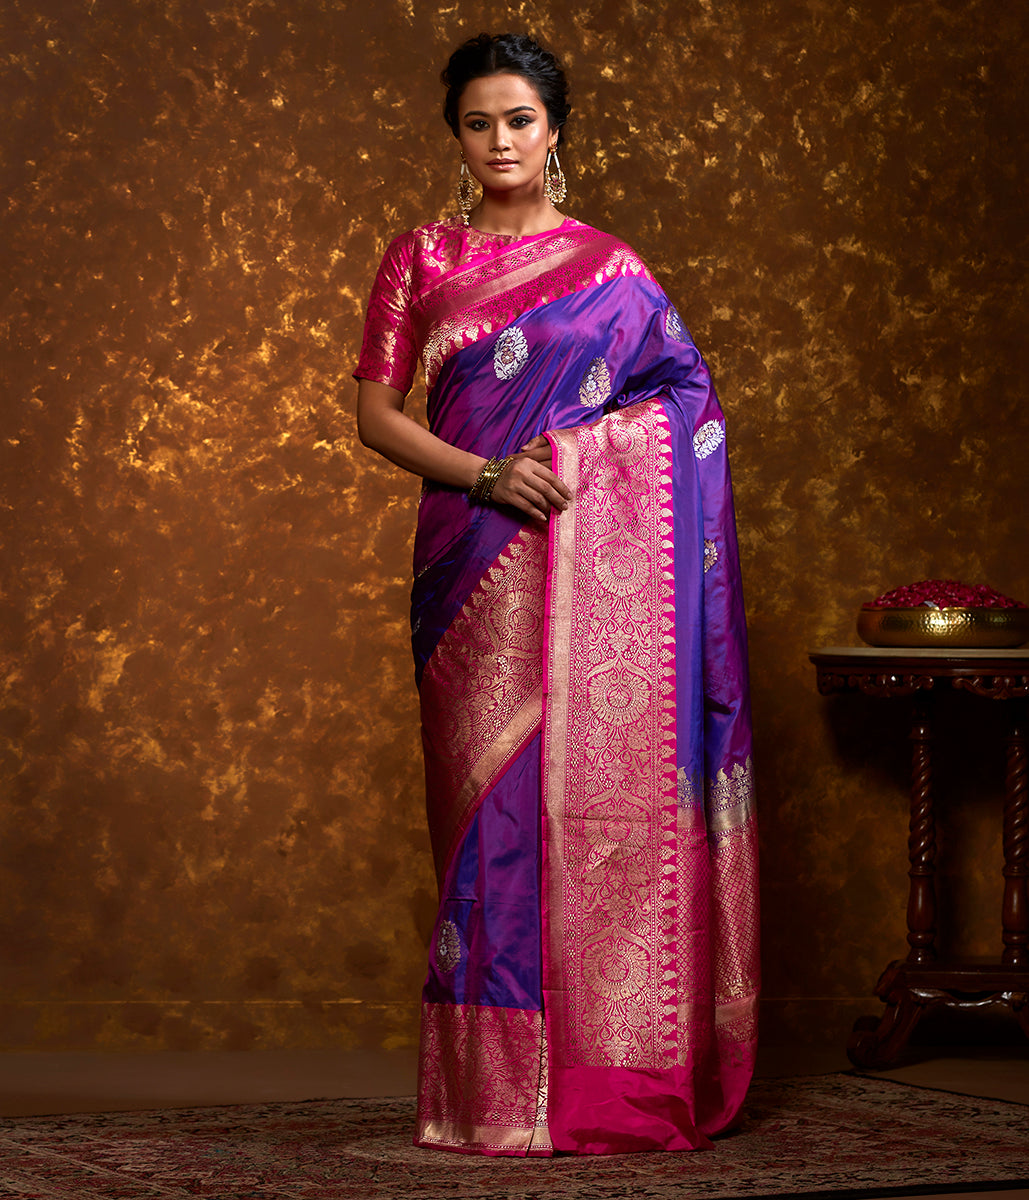 Handwoven Purple Banarasi Saree with Hot Pink Border